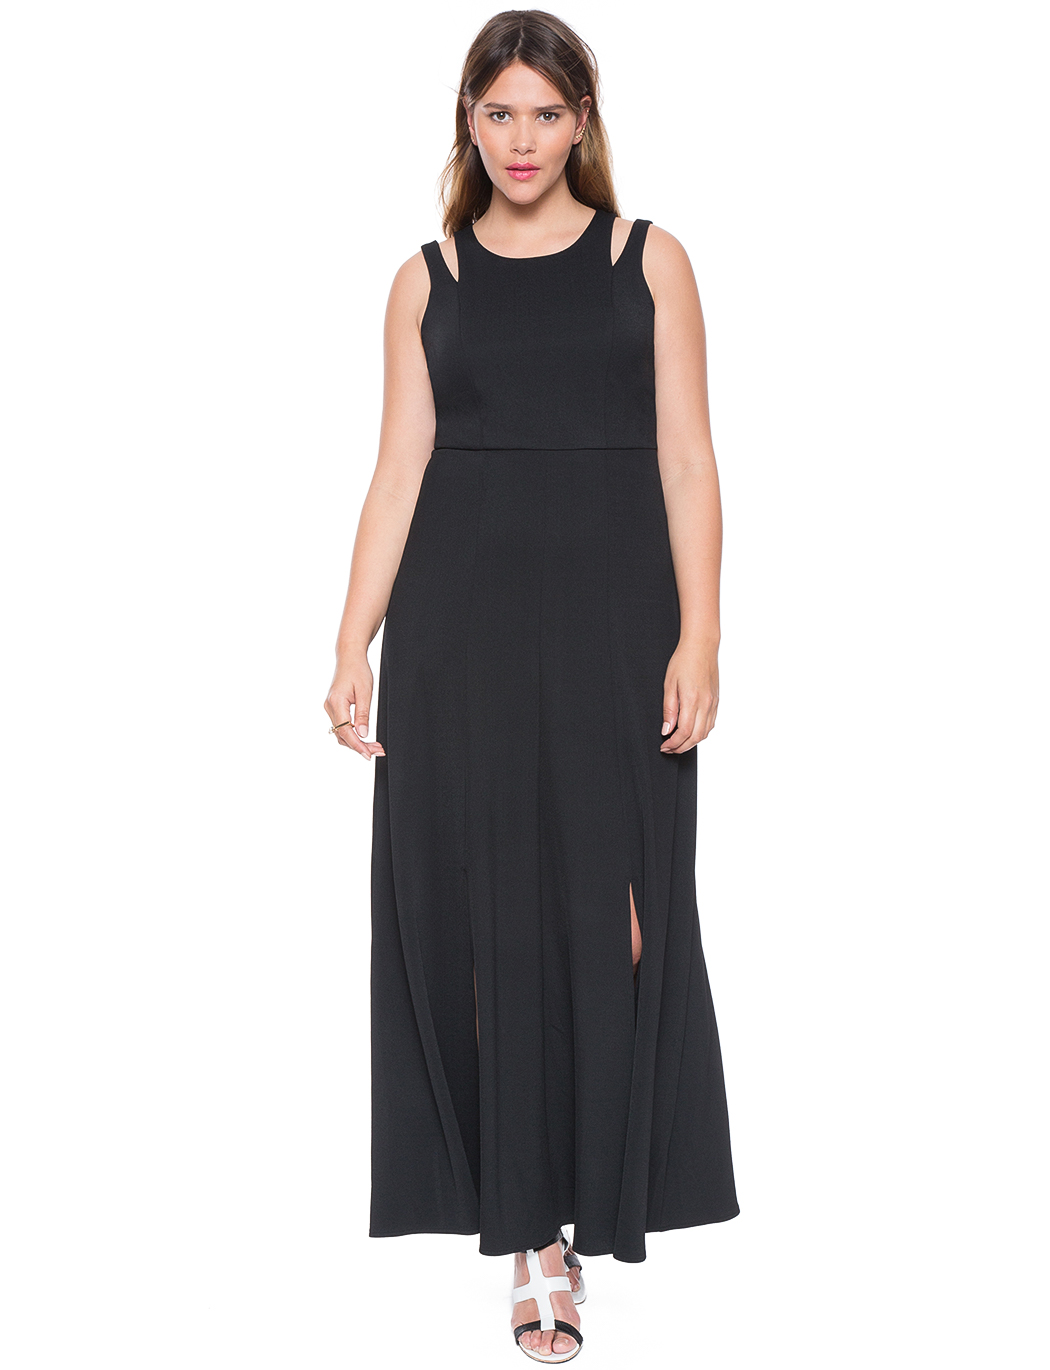 Studio Double Slit Maxi Dress | Women\'s Plus Size Dresses | ELOQUII